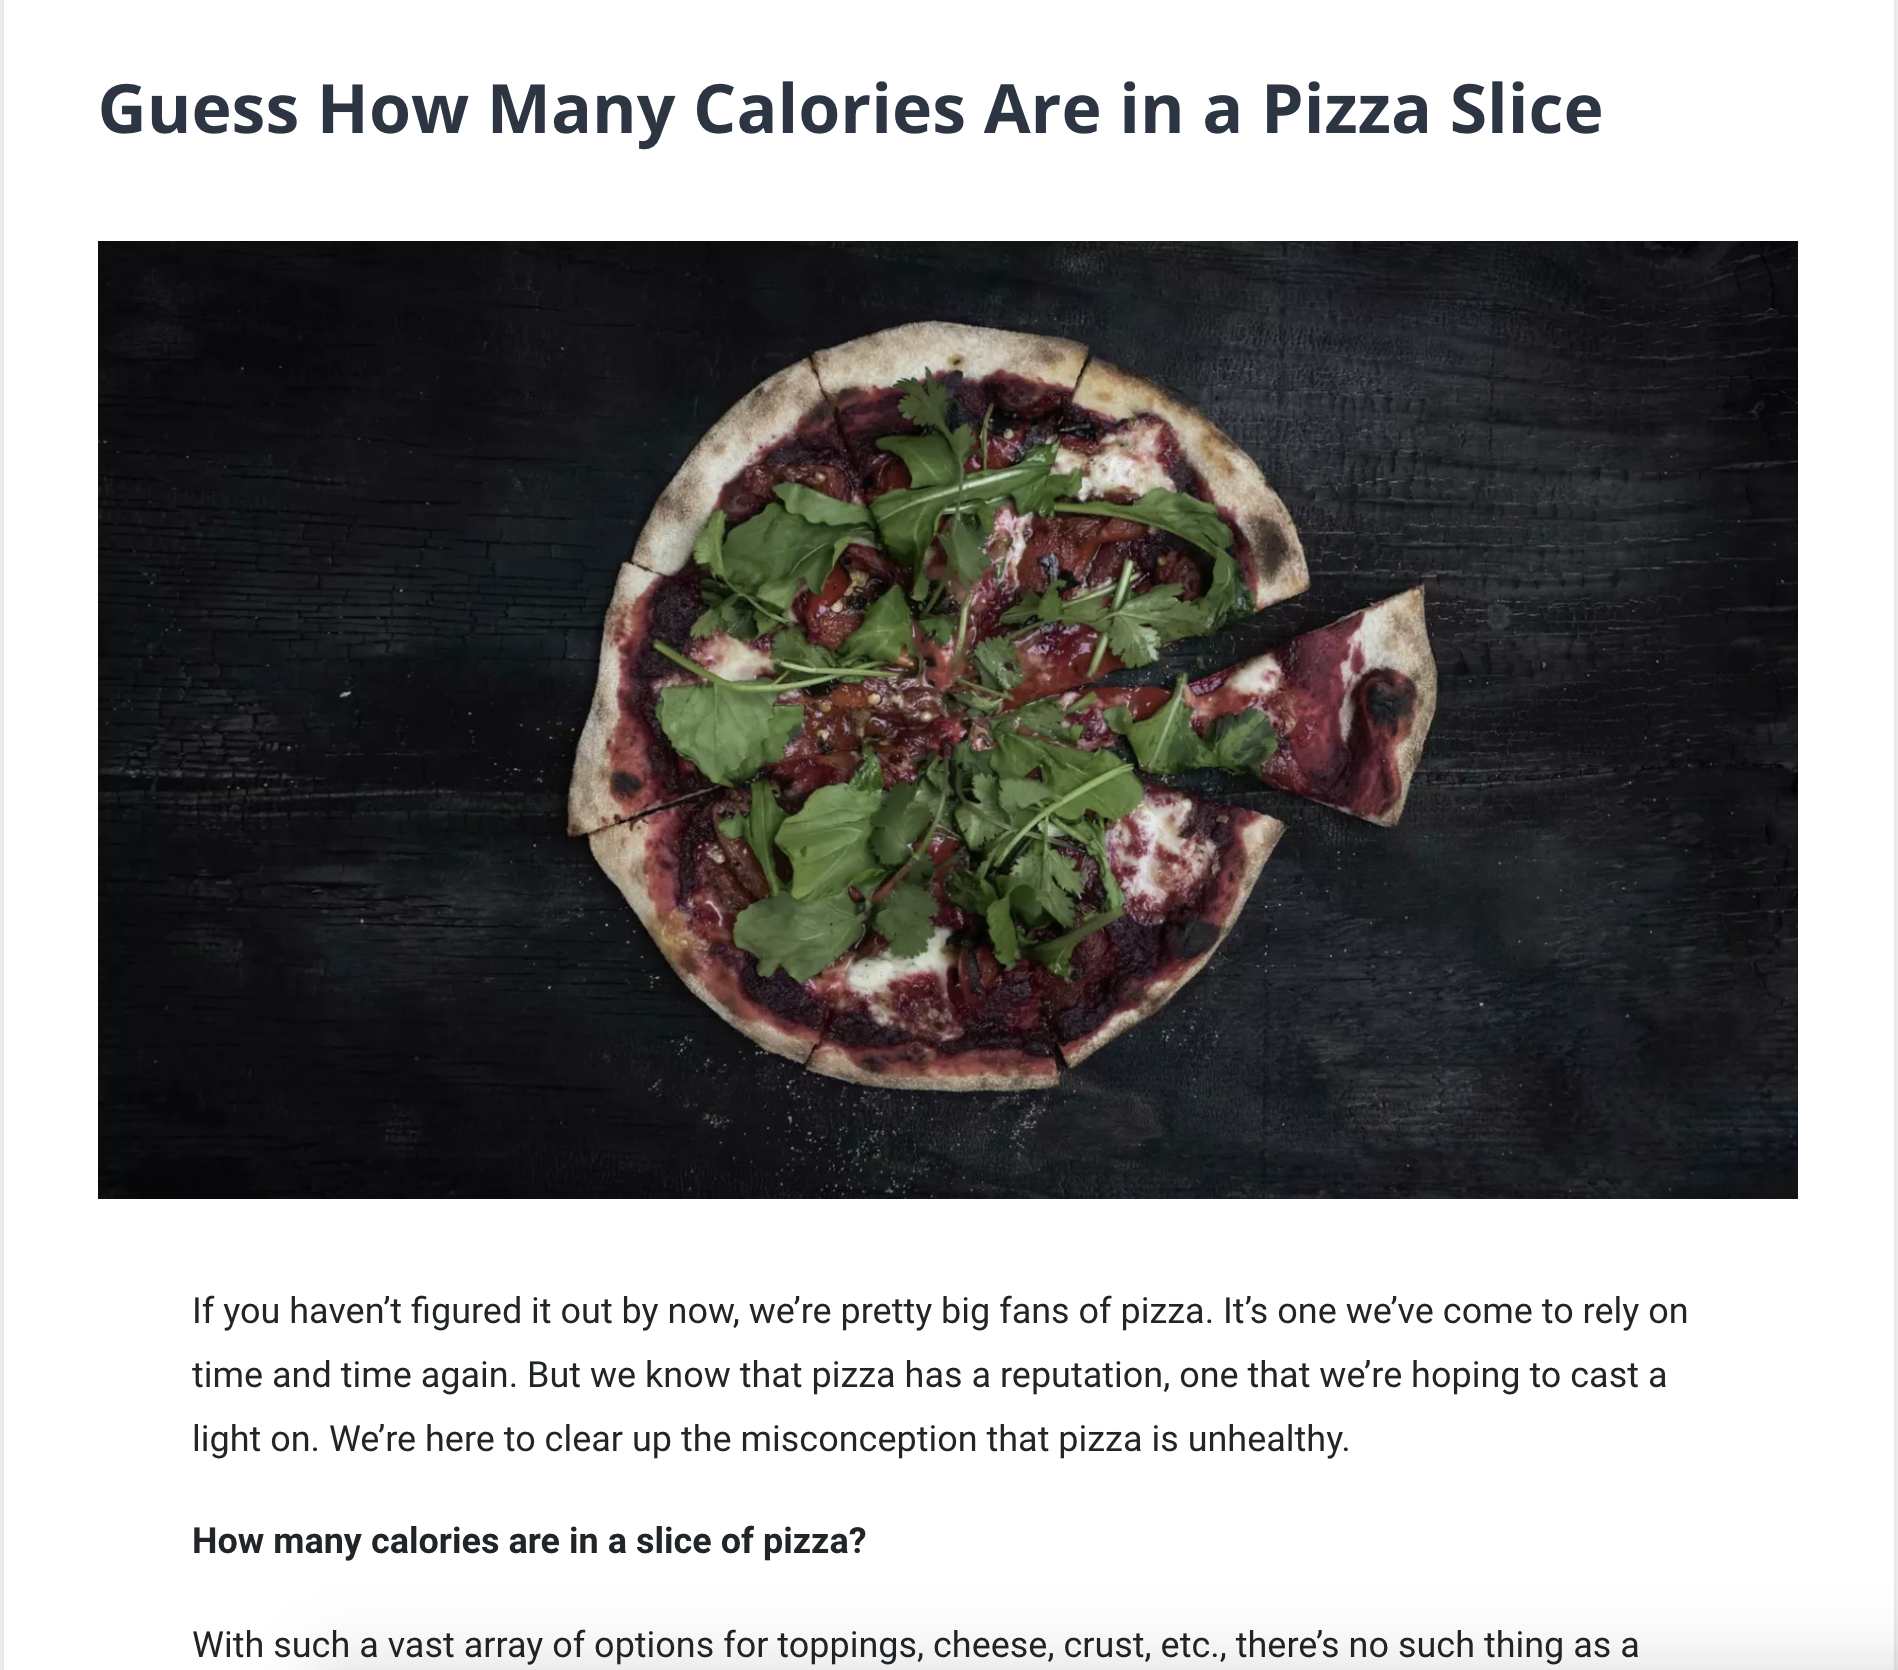 Guess How Many Calories Are In a Pizza Slice